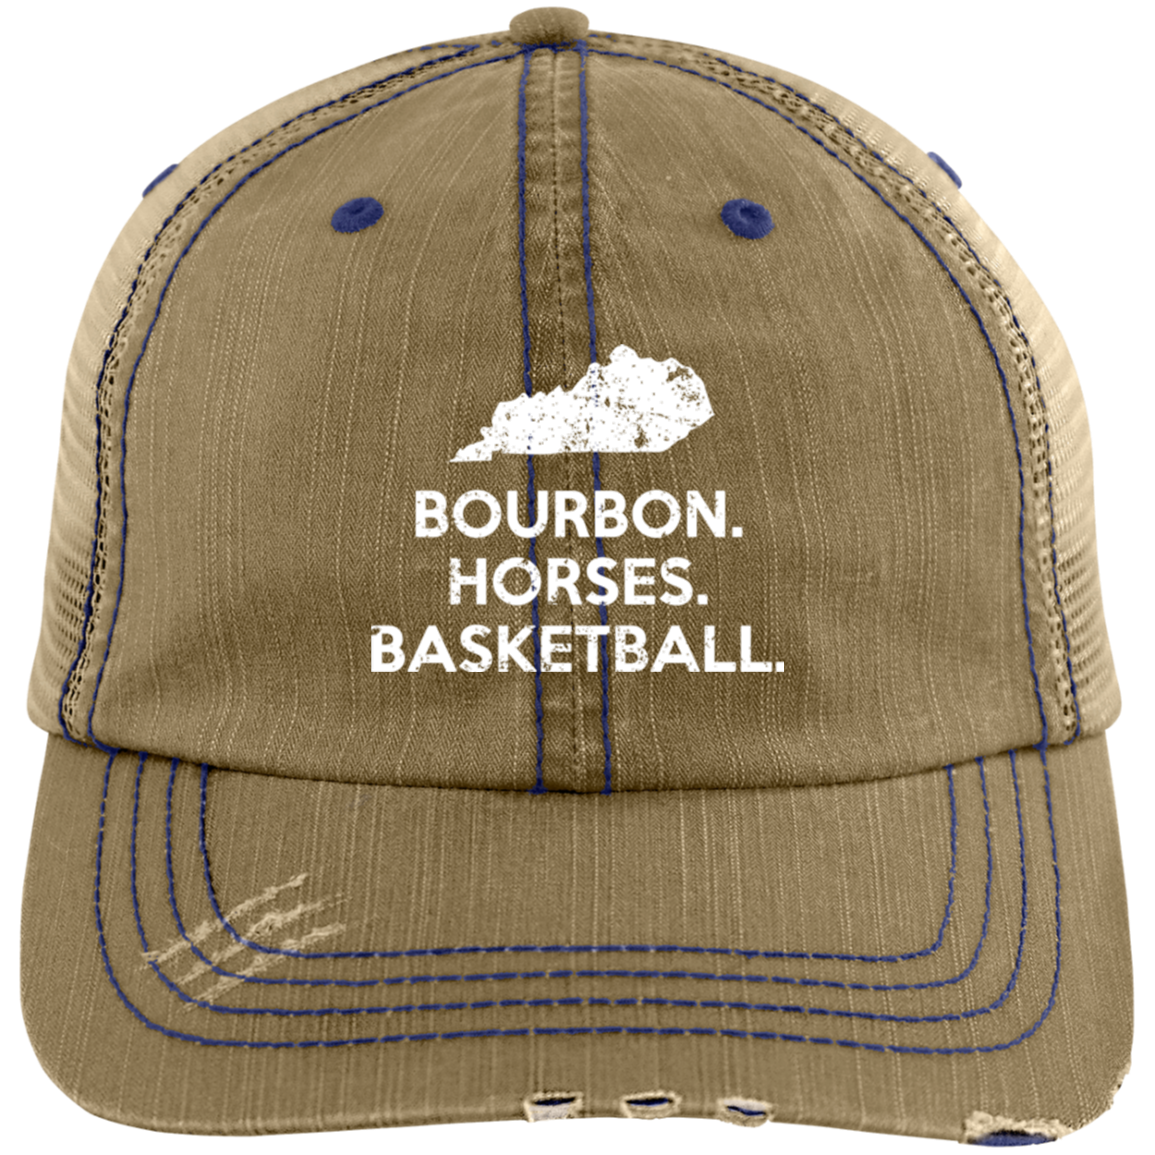 5d7bff52 ... discount kentucky bourbon horses basketball hat kentucky hat gift 8cd05  95e02